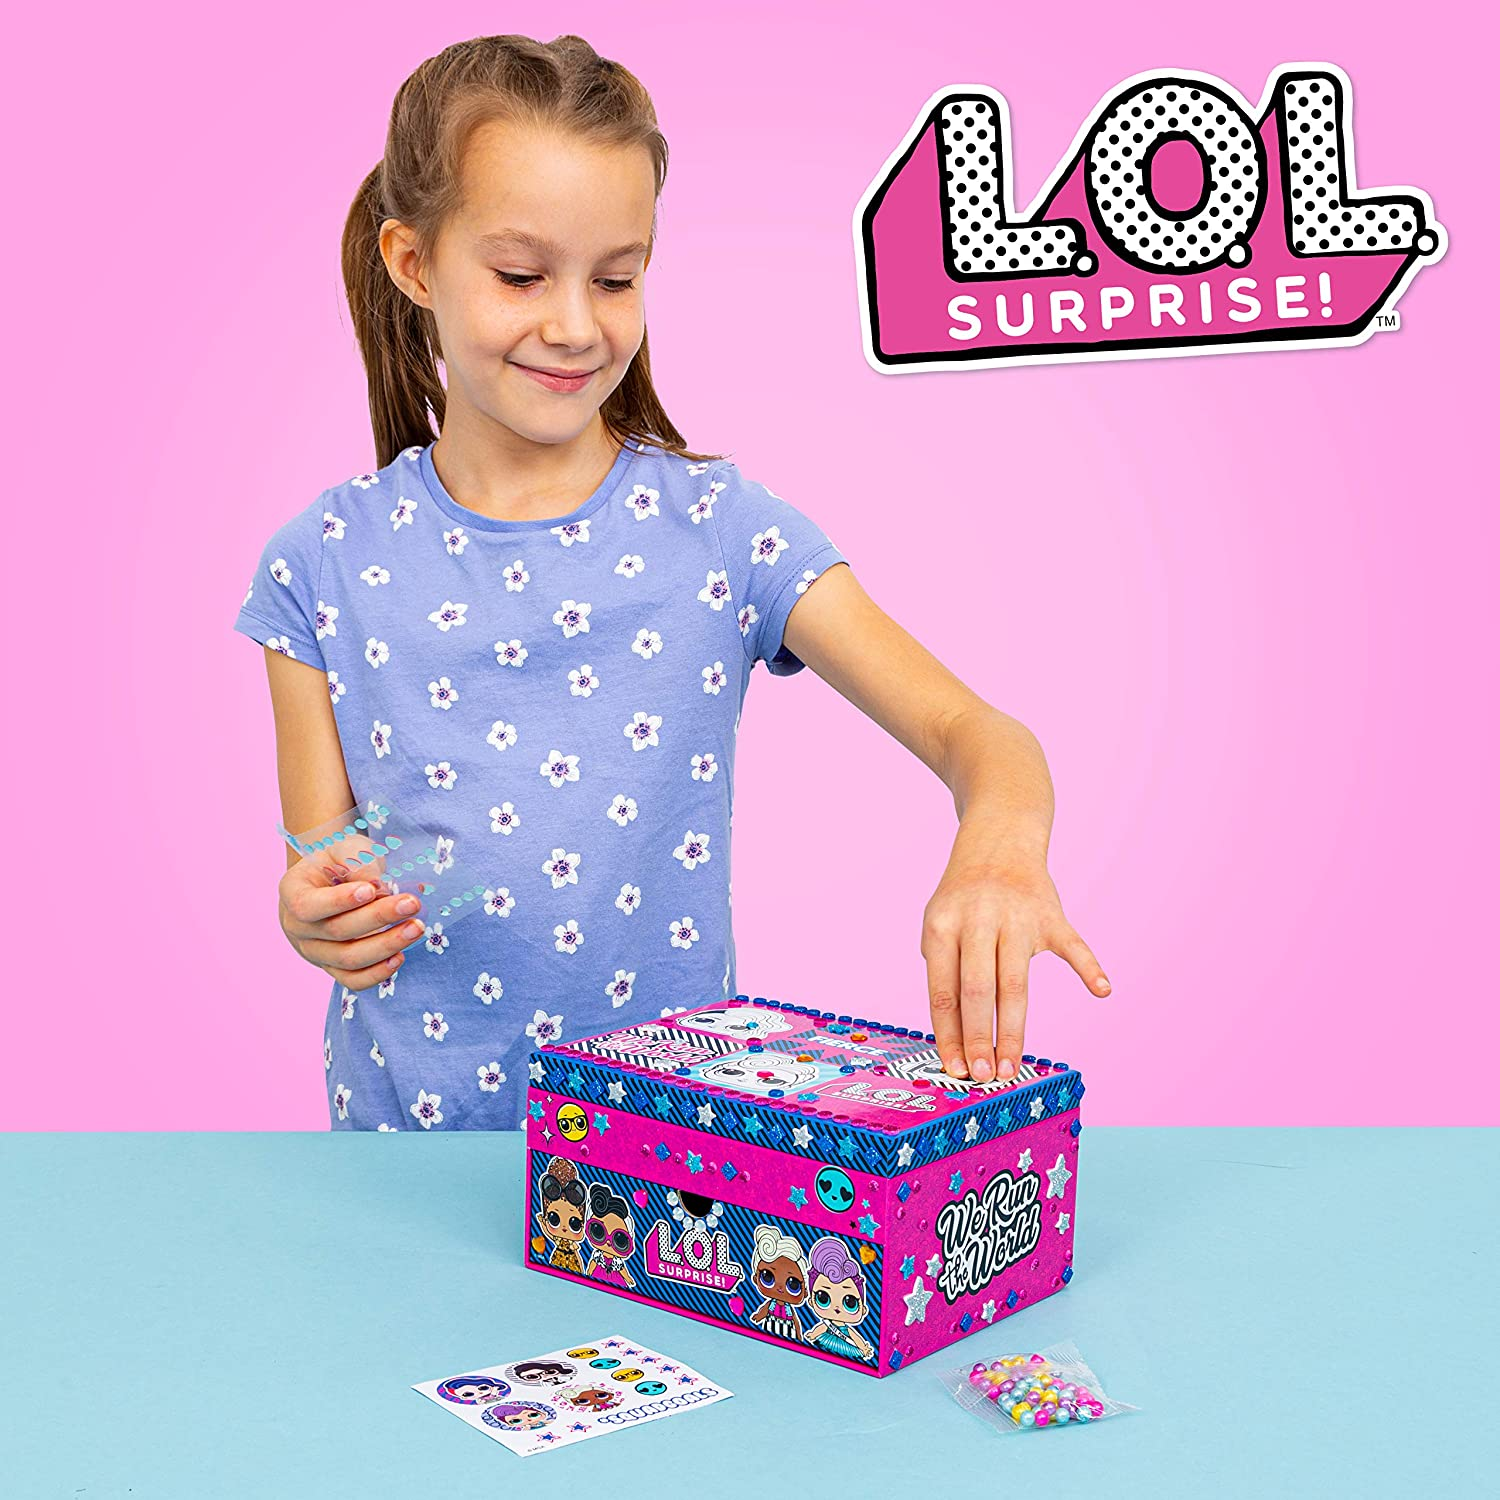 42-0012//19 Decorate Your Own Jewellery Box for Girls-LOL Surprise Surprise L.O.L